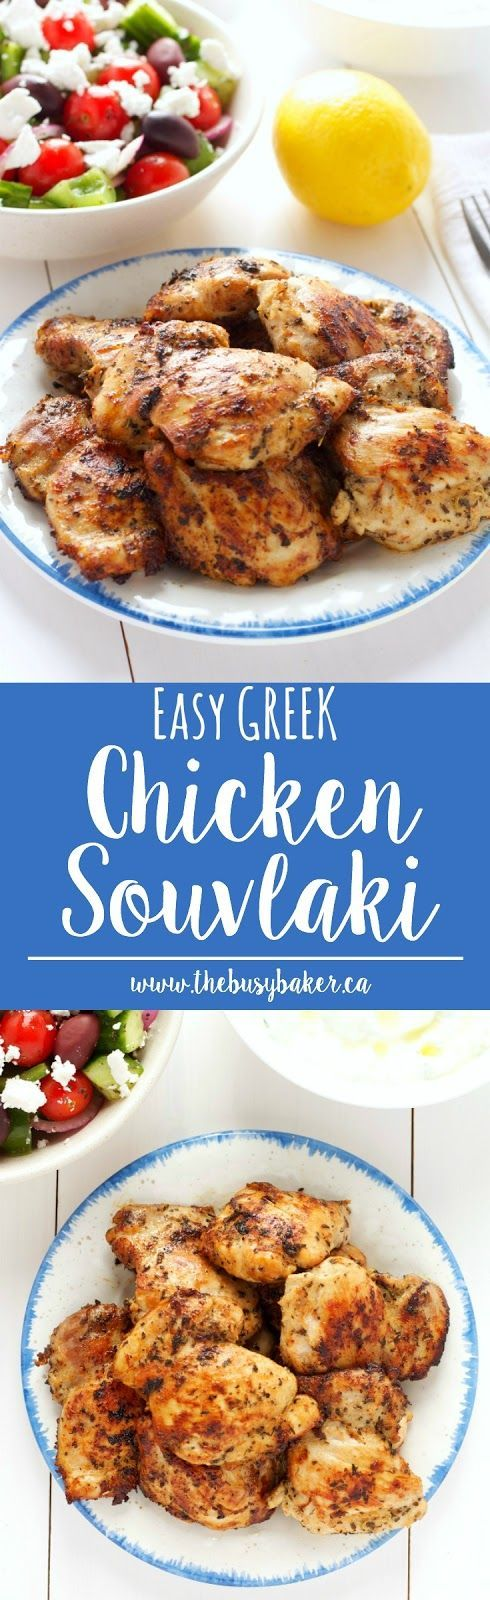 The easiest Greek Chicken Souvlaki this side of Greece! An easy marinade and inexpensive chicken thighs make this dish a simple twist on the Greek classic! Hungry for more? Pin this recipe on Pinterest! Follow me! Like my page on Facebook!   Subscribe! Click here to get free recipes by email! In case you haven't...